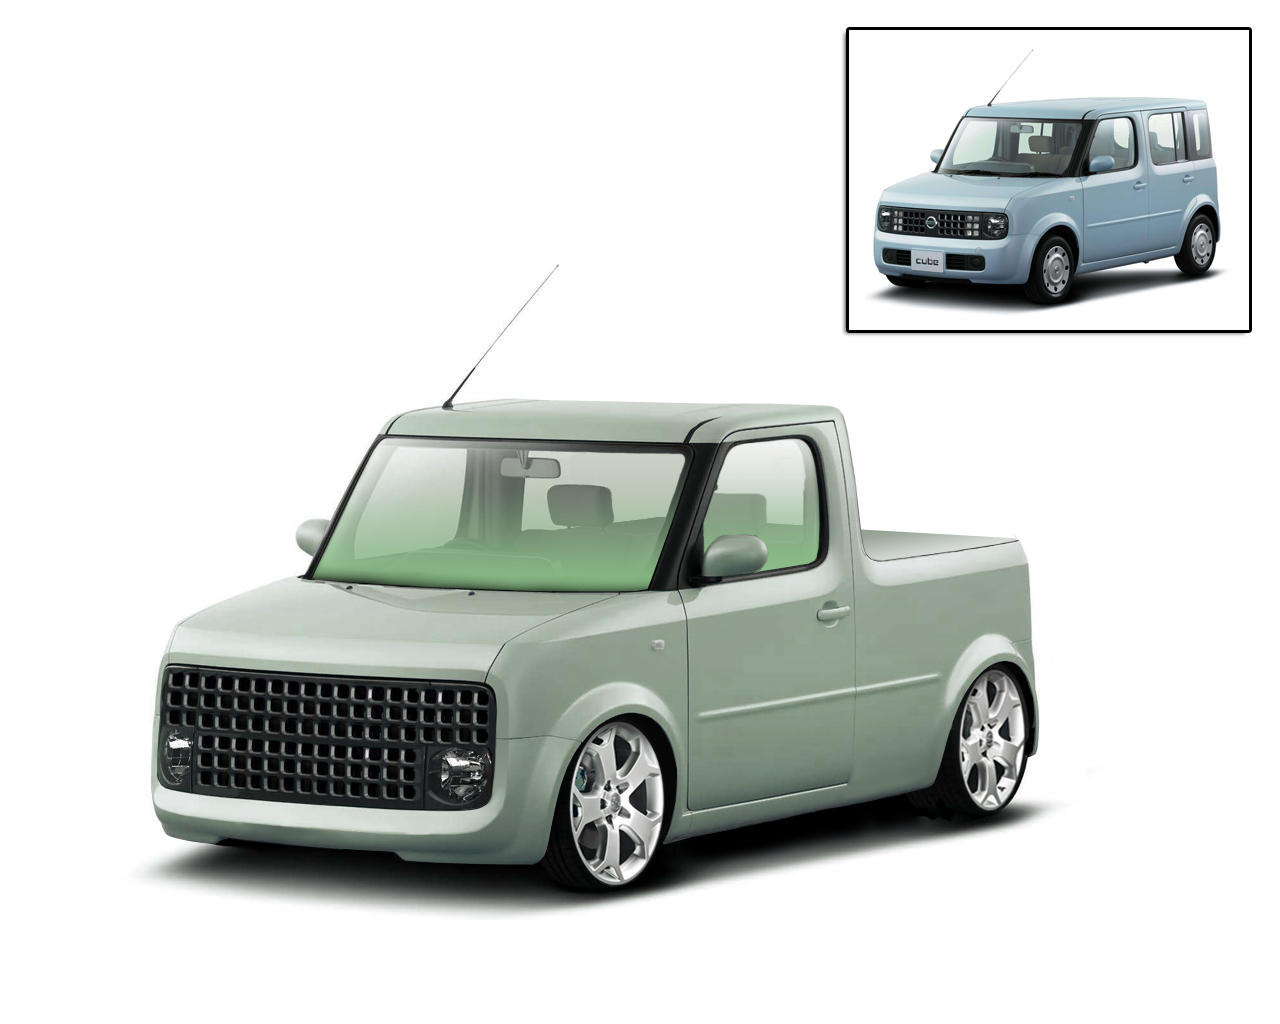 nissan cube by caingoe on deviantart. Black Bedroom Furniture Sets. Home Design Ideas